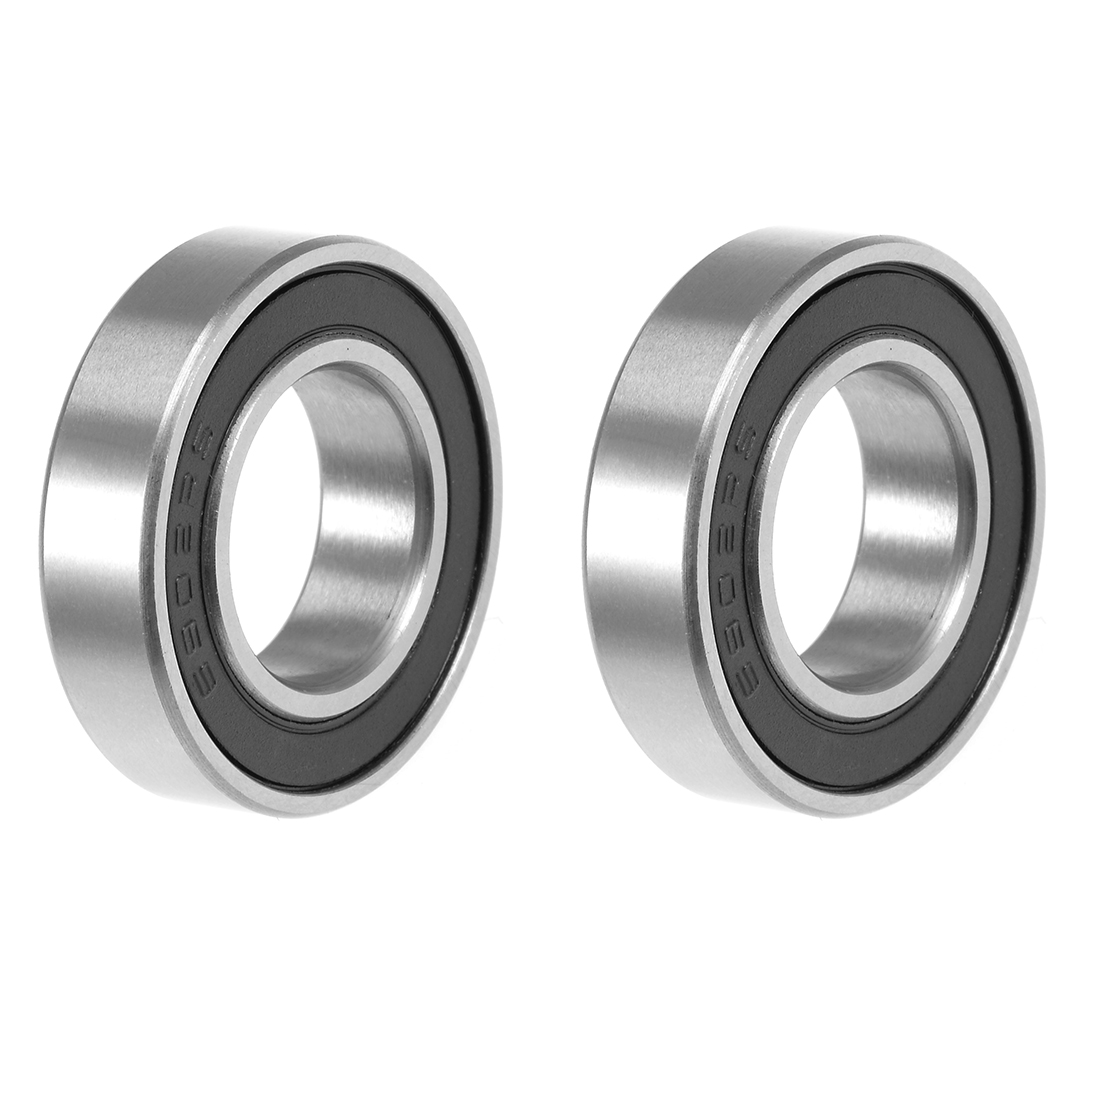 uxcell <font><b>6902</b></font>-<font><b>2RS</b></font> Ball <font><b>Bearing</b></font> 15x28x7mm Double Sealed ABEC-3 <font><b>Bearings</b></font> 2pcs image